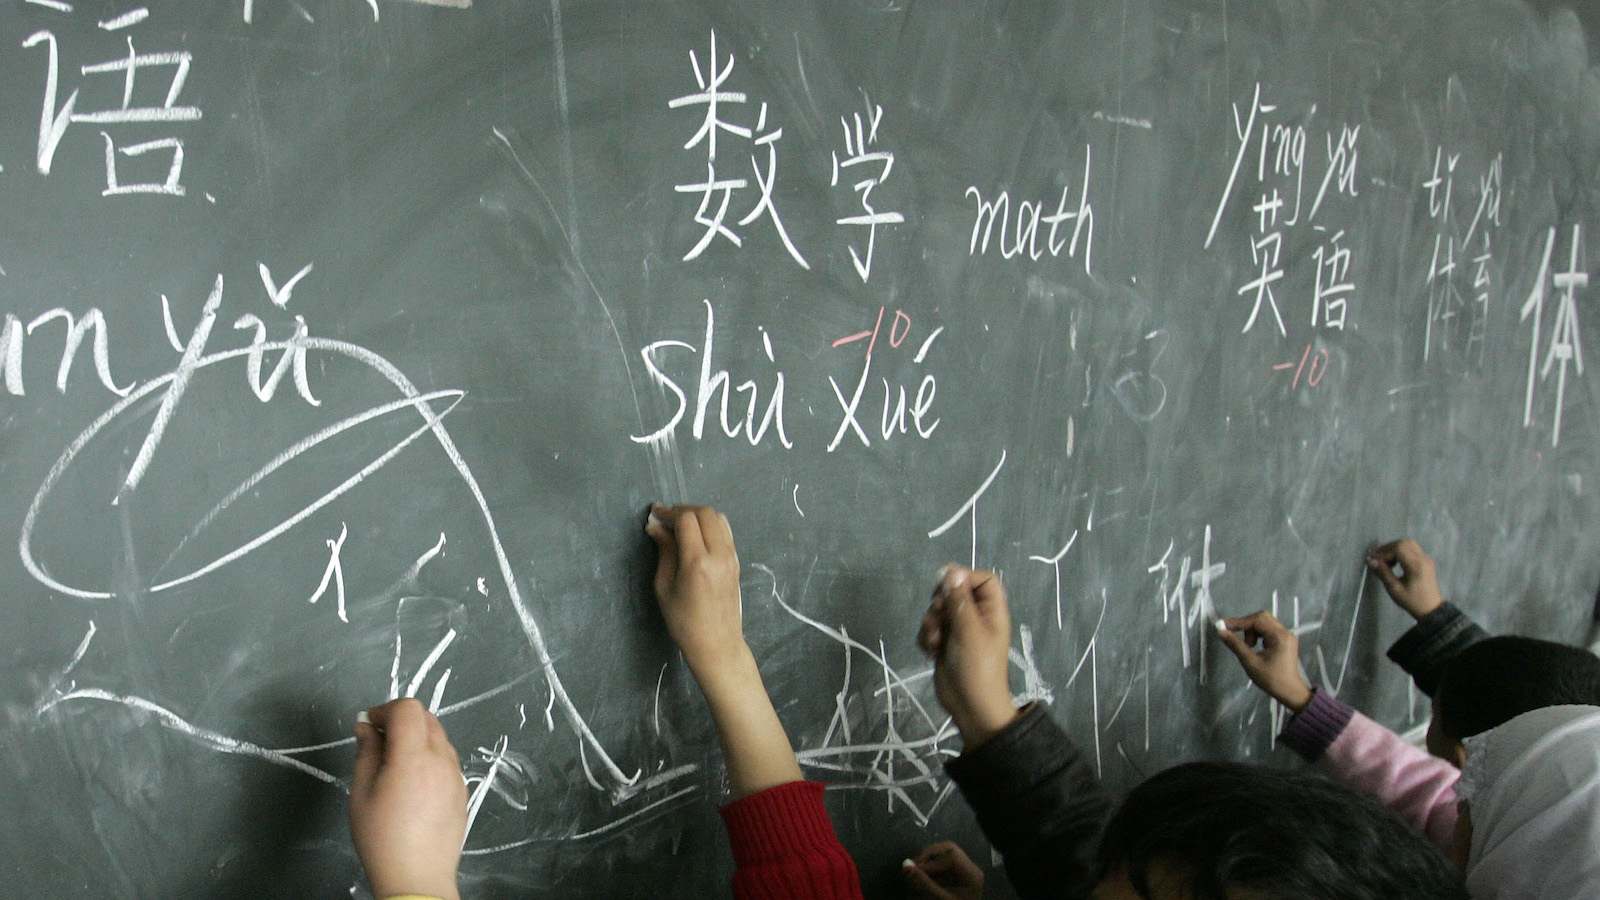 Students study Chinese characters at Qunxing international school in Yiwu, Zhejiang province March 7, 2008. REUTERS/Aly Song (CHINA) - RTR1YK92